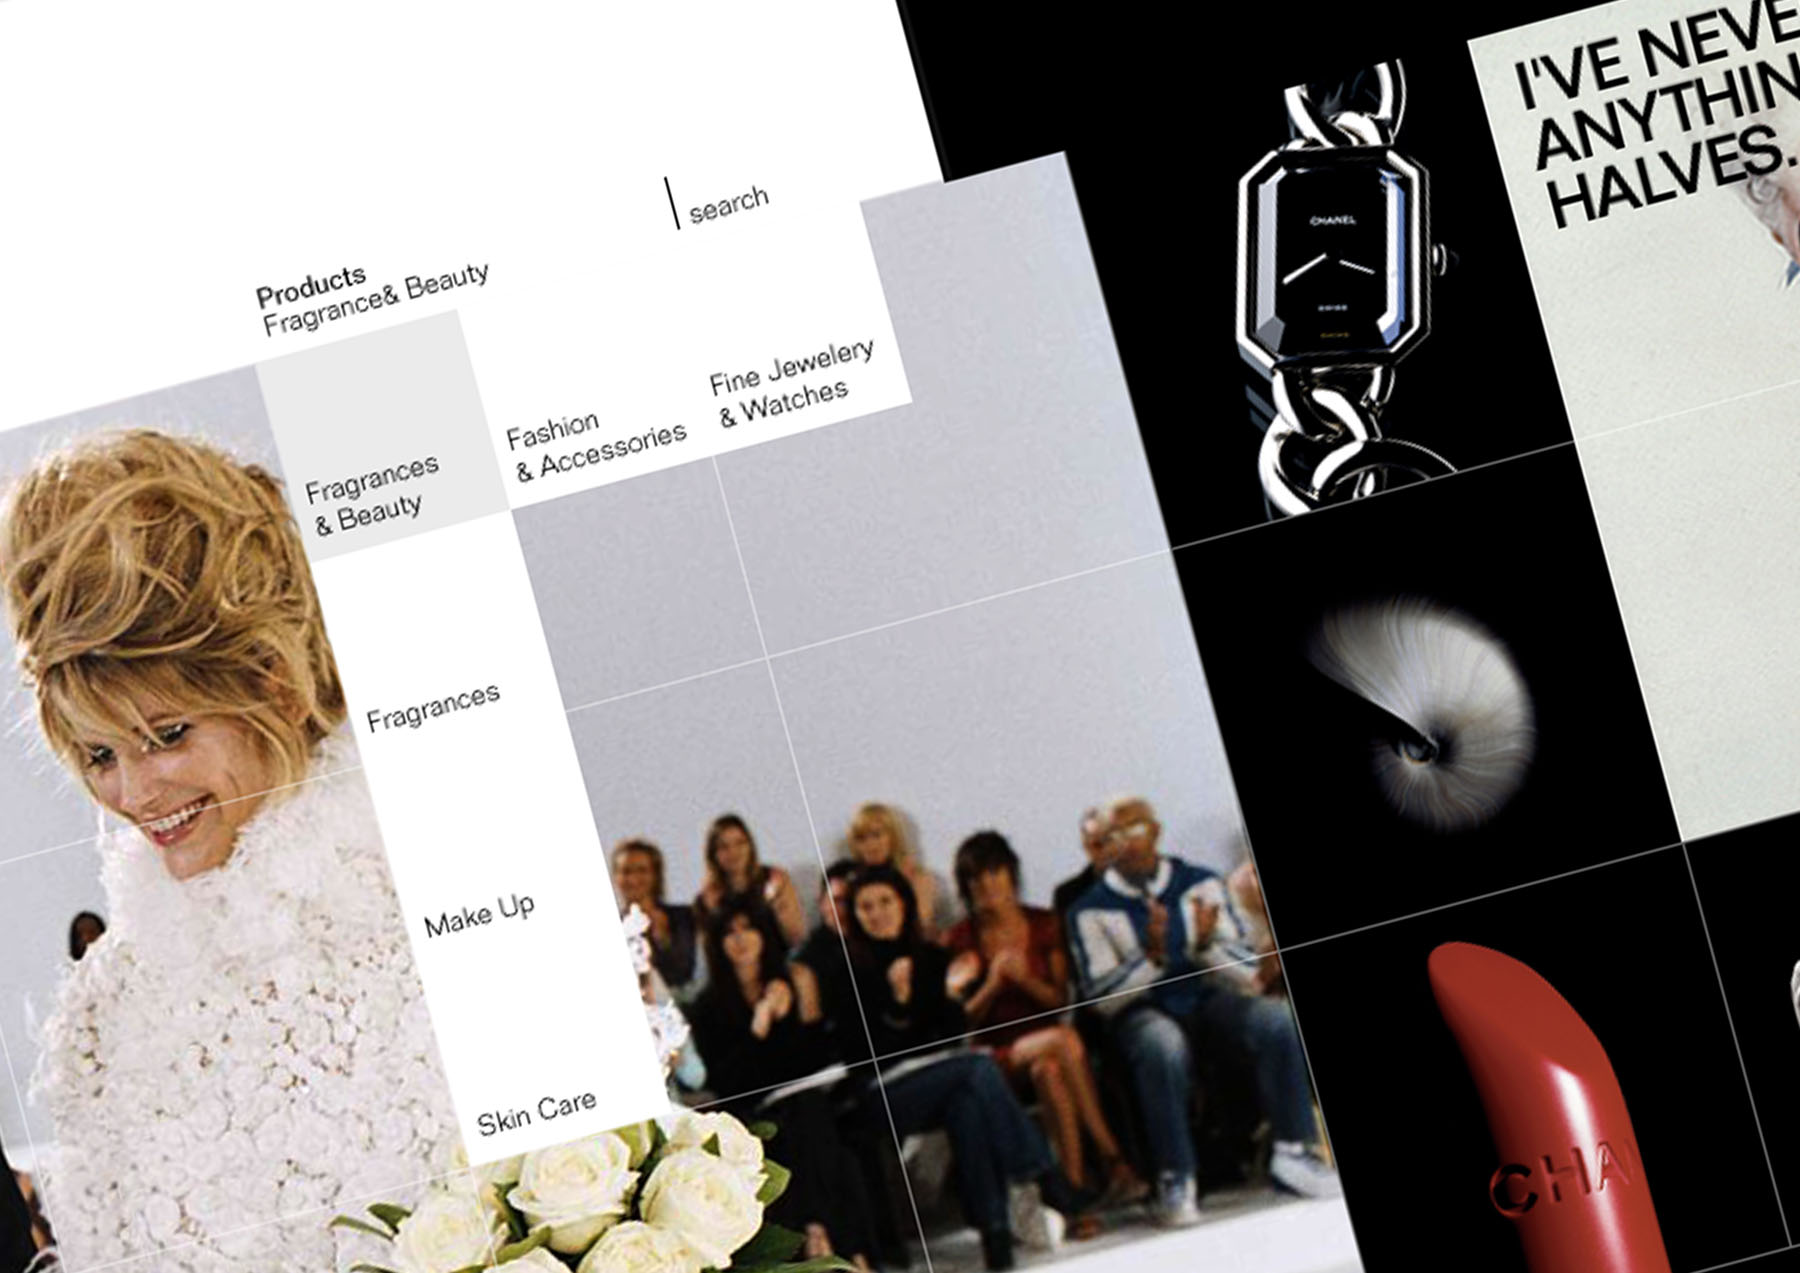 CHANEL Brand Interface / Reflection